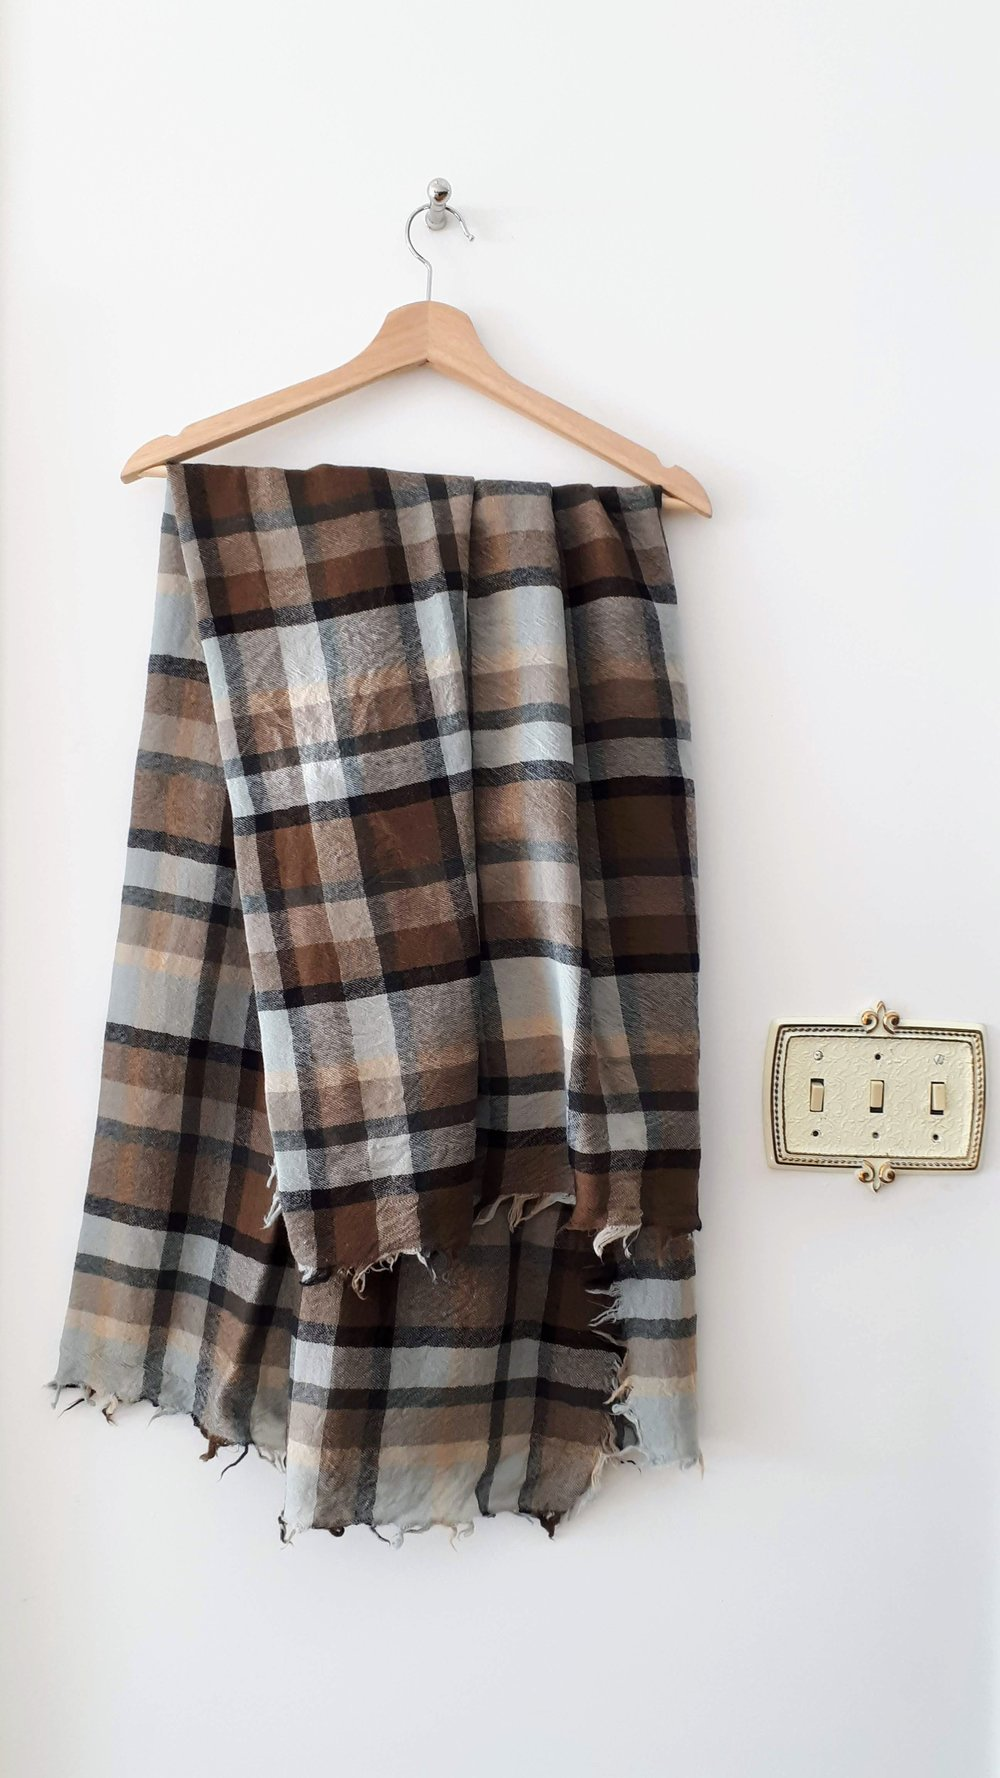 Wilfred scarf, $26